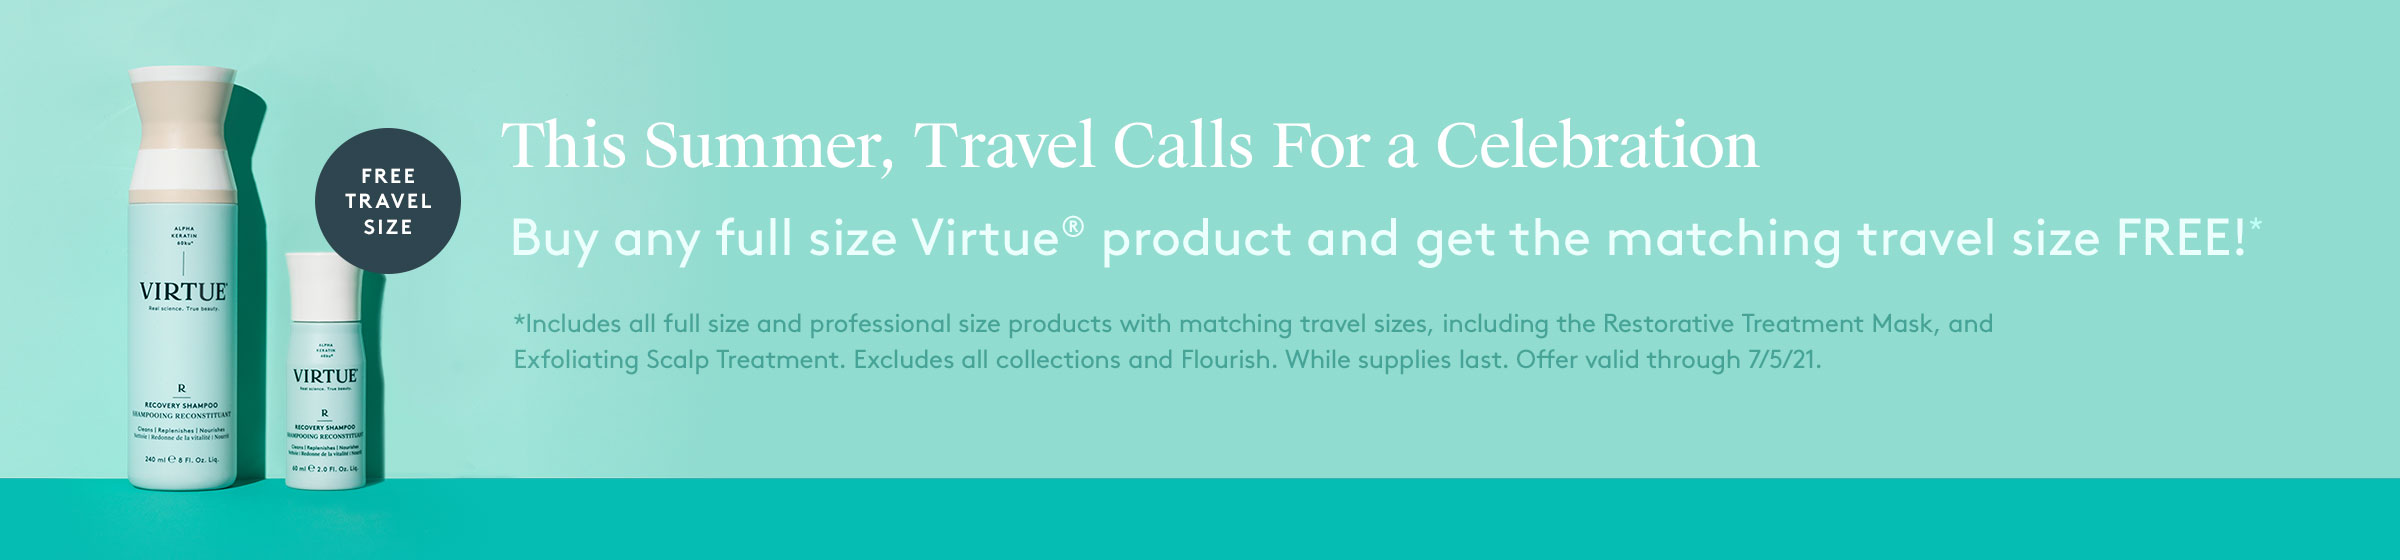 Buy Any Full Size Product, Get the Matching Travel Size Free